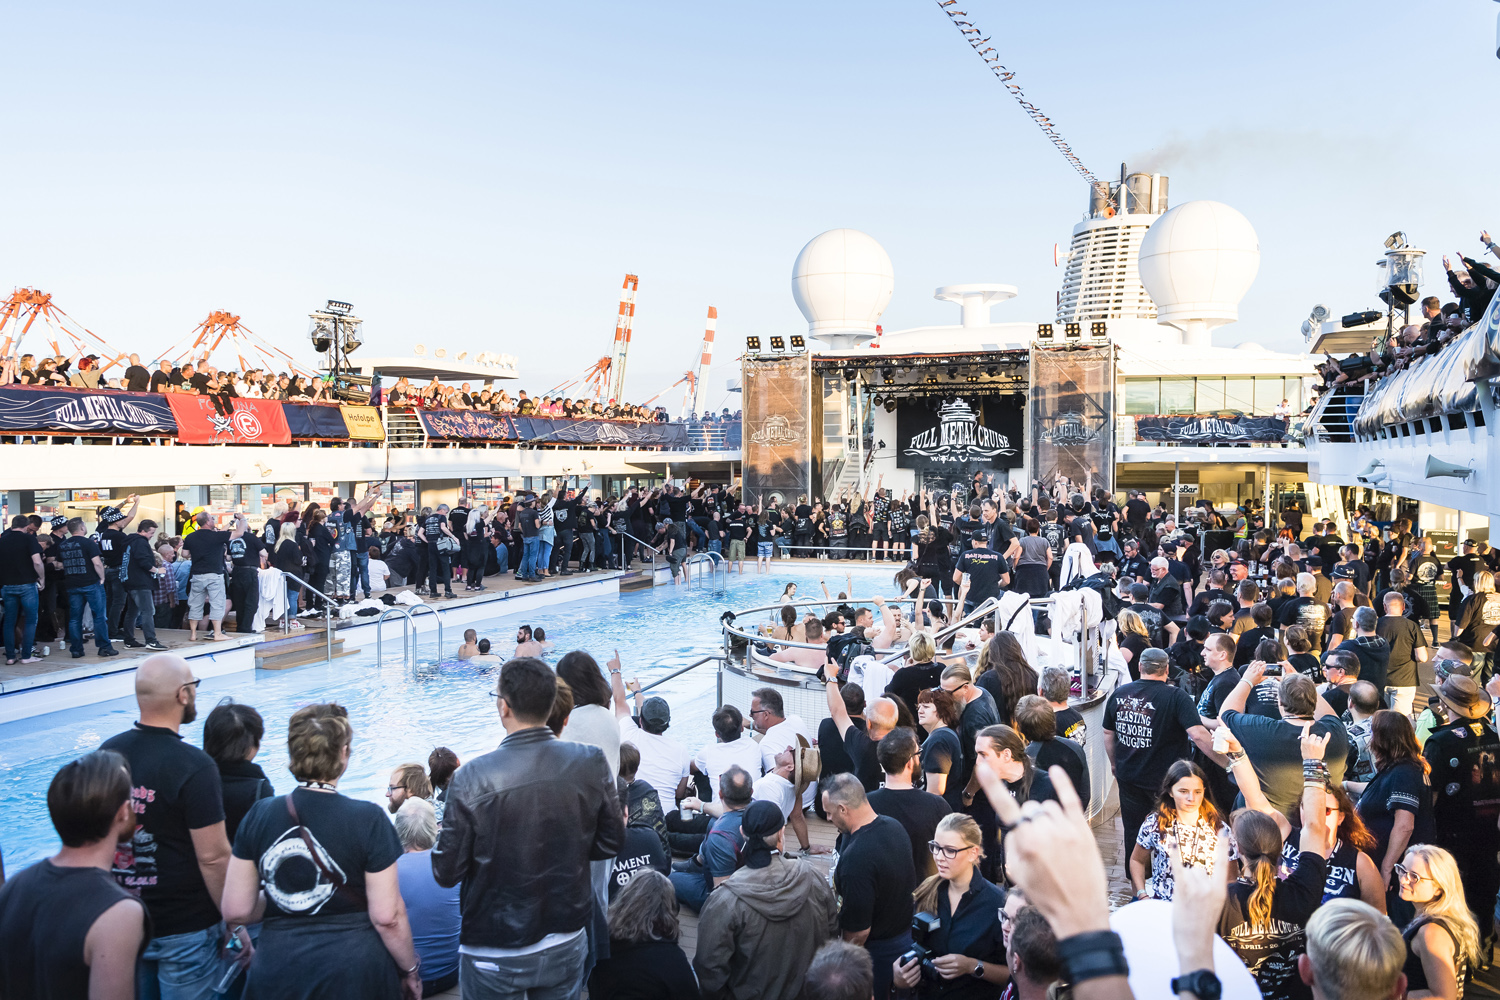 Party am Pool bei der Full Metal Cruise von TUI Cruises